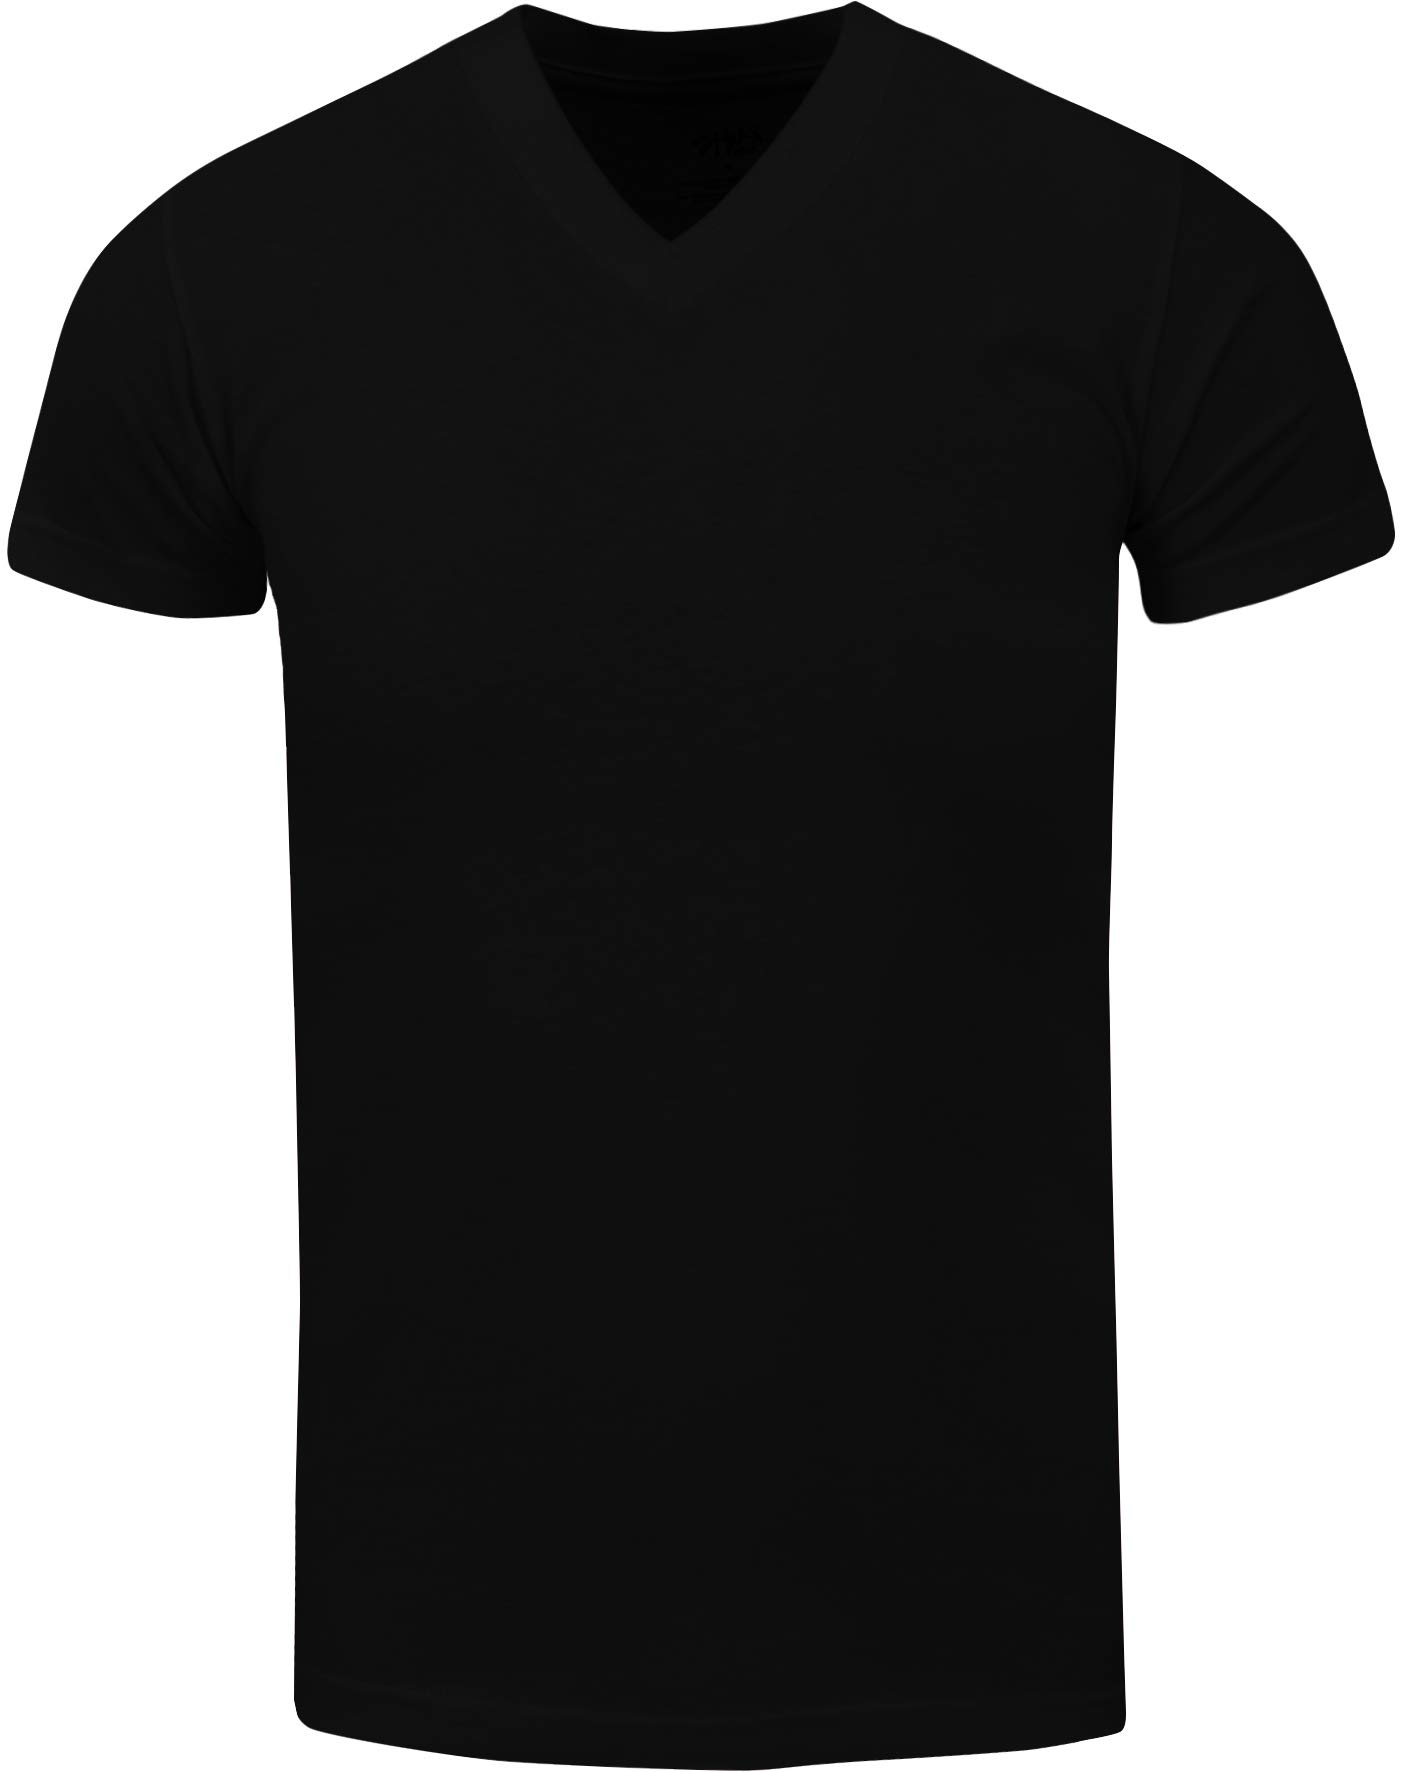 VNS02_ Active Mens Premium Cotton Heavy Weight V Neck Basic T Shirt Black